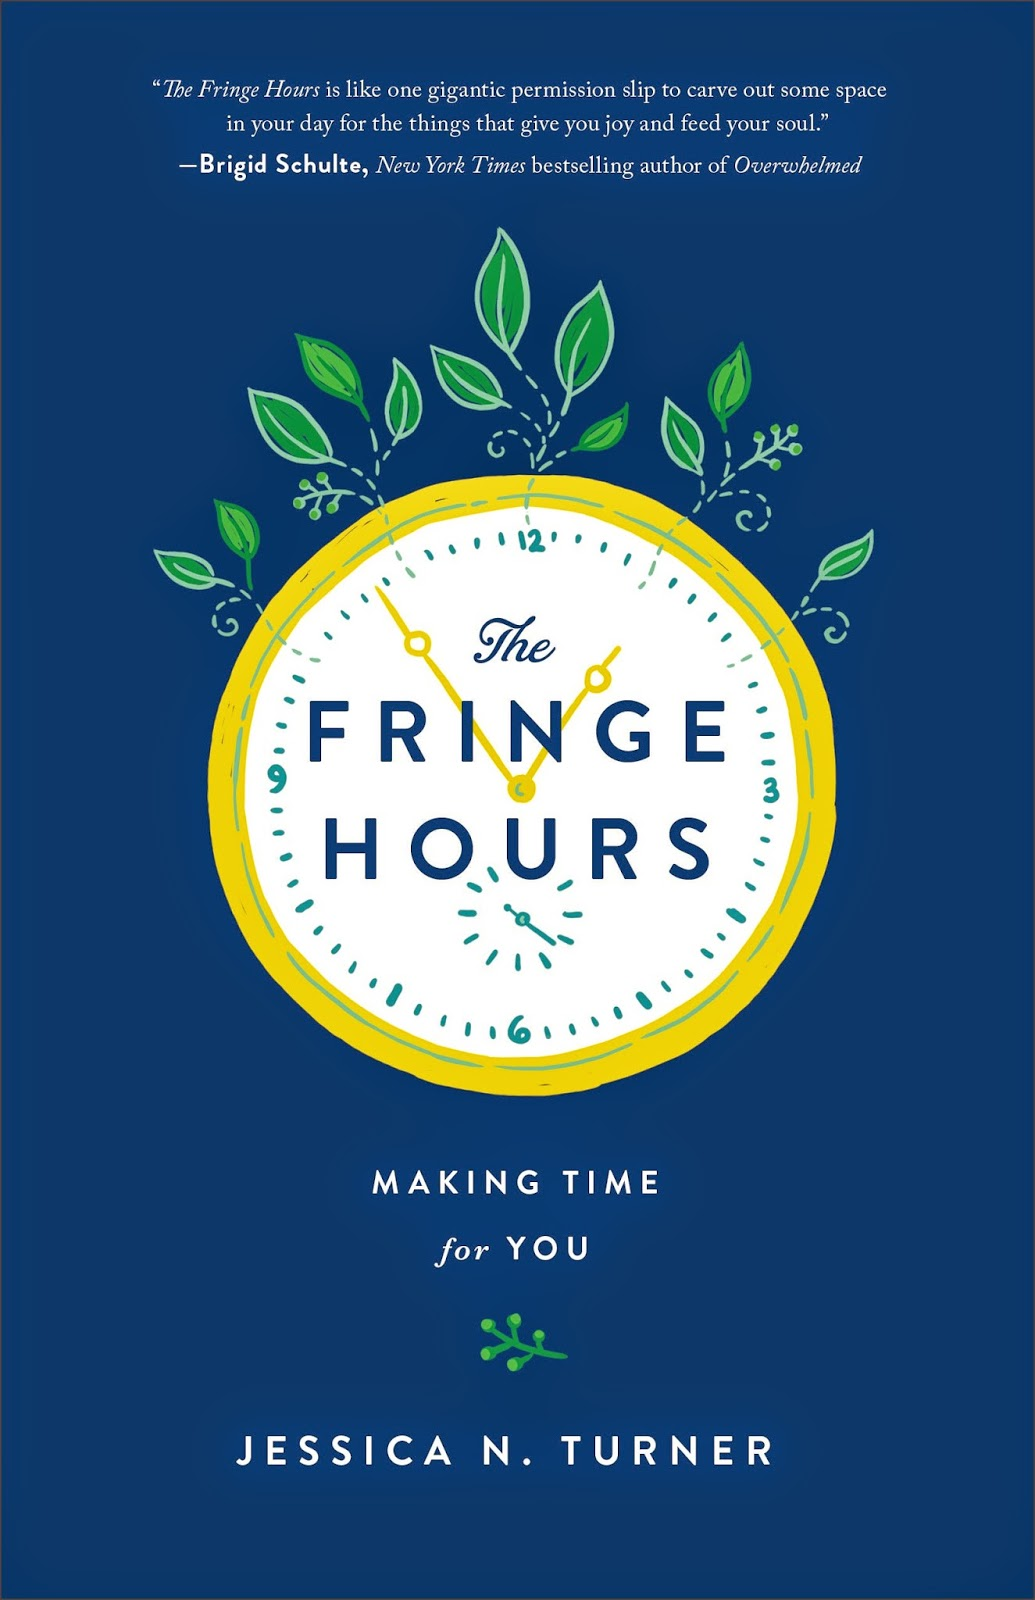 http://www.amazon.com/The-Fringe-Hours-Making-Time-ebook/dp/B00LB5OYHS